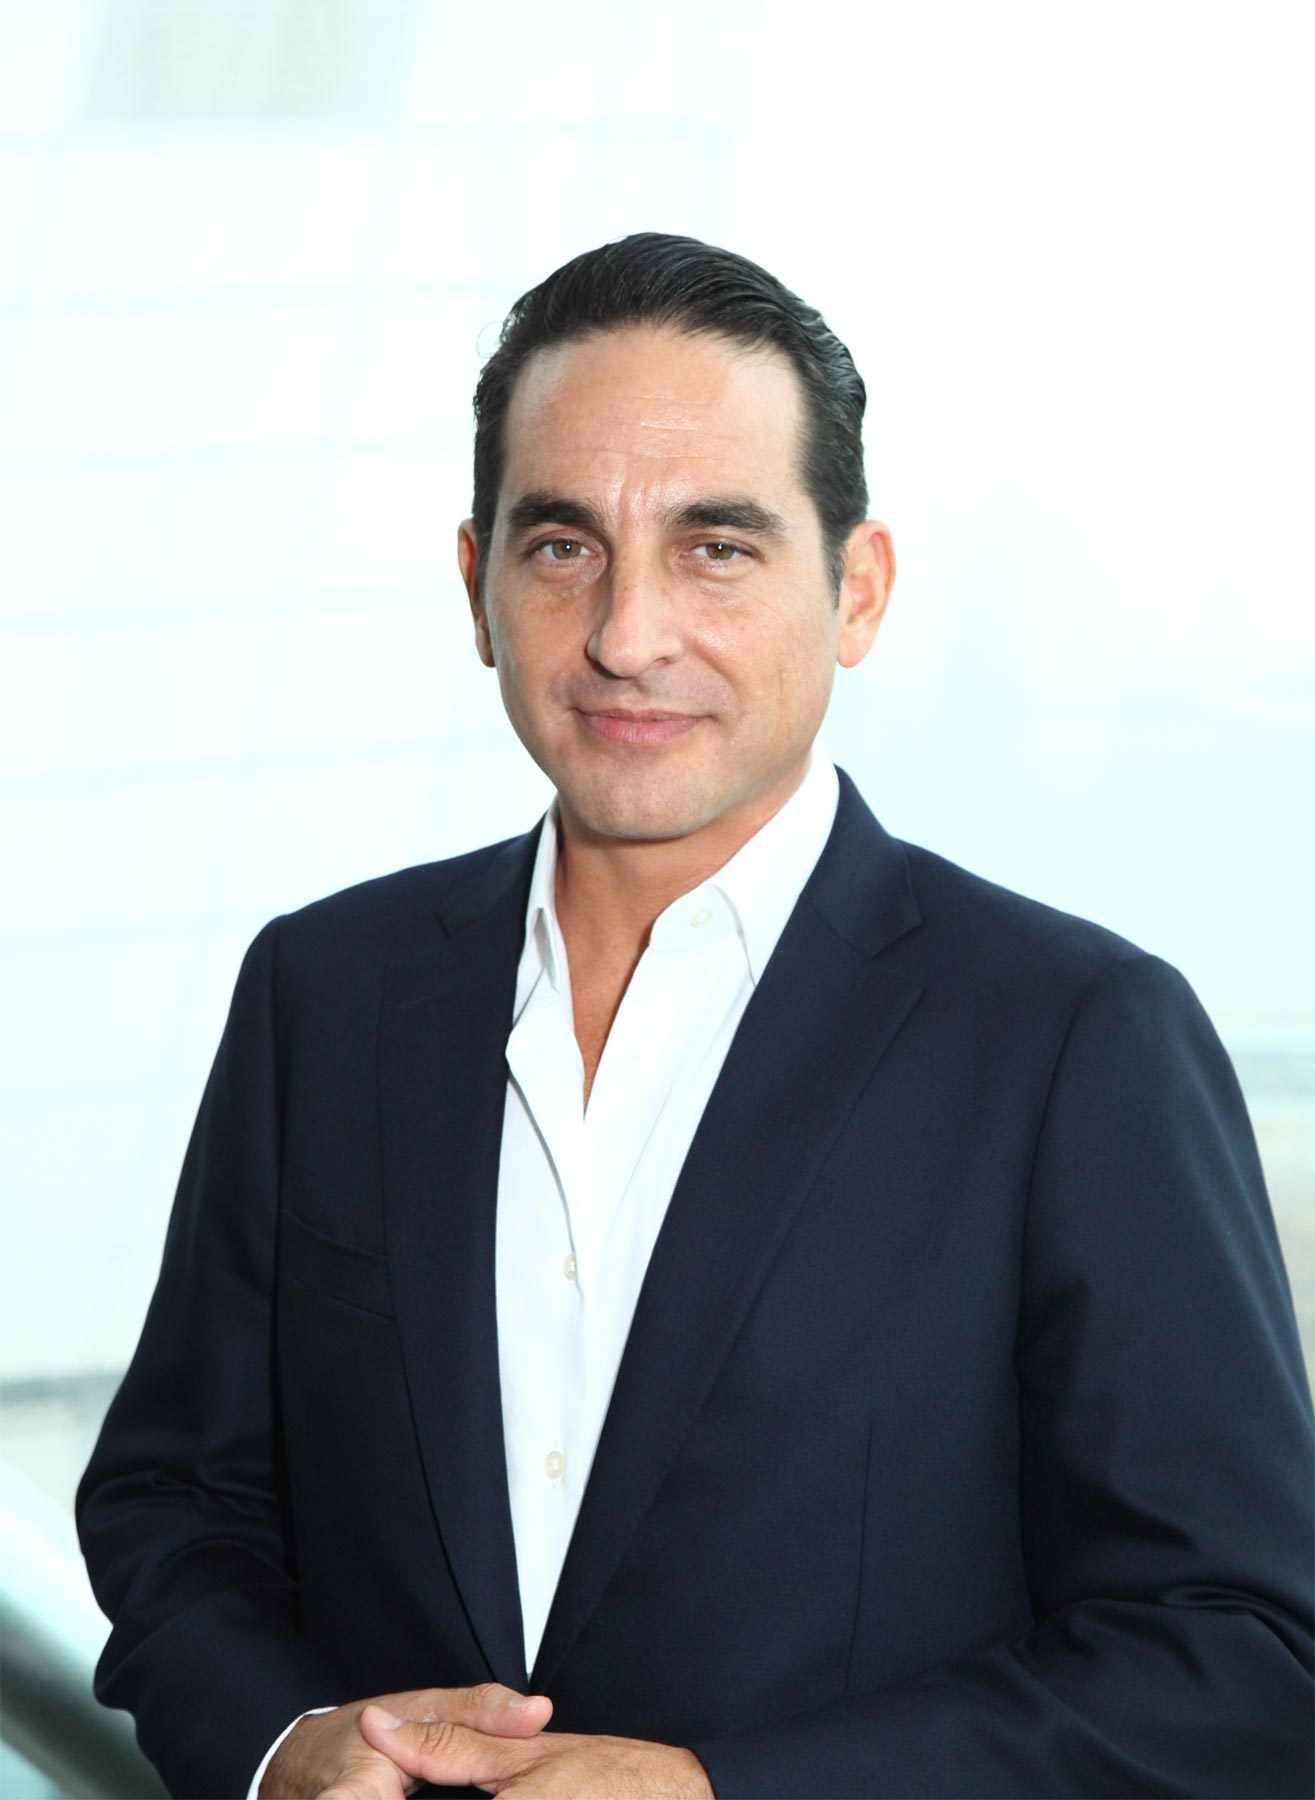 John Blanco, CEO of Afini